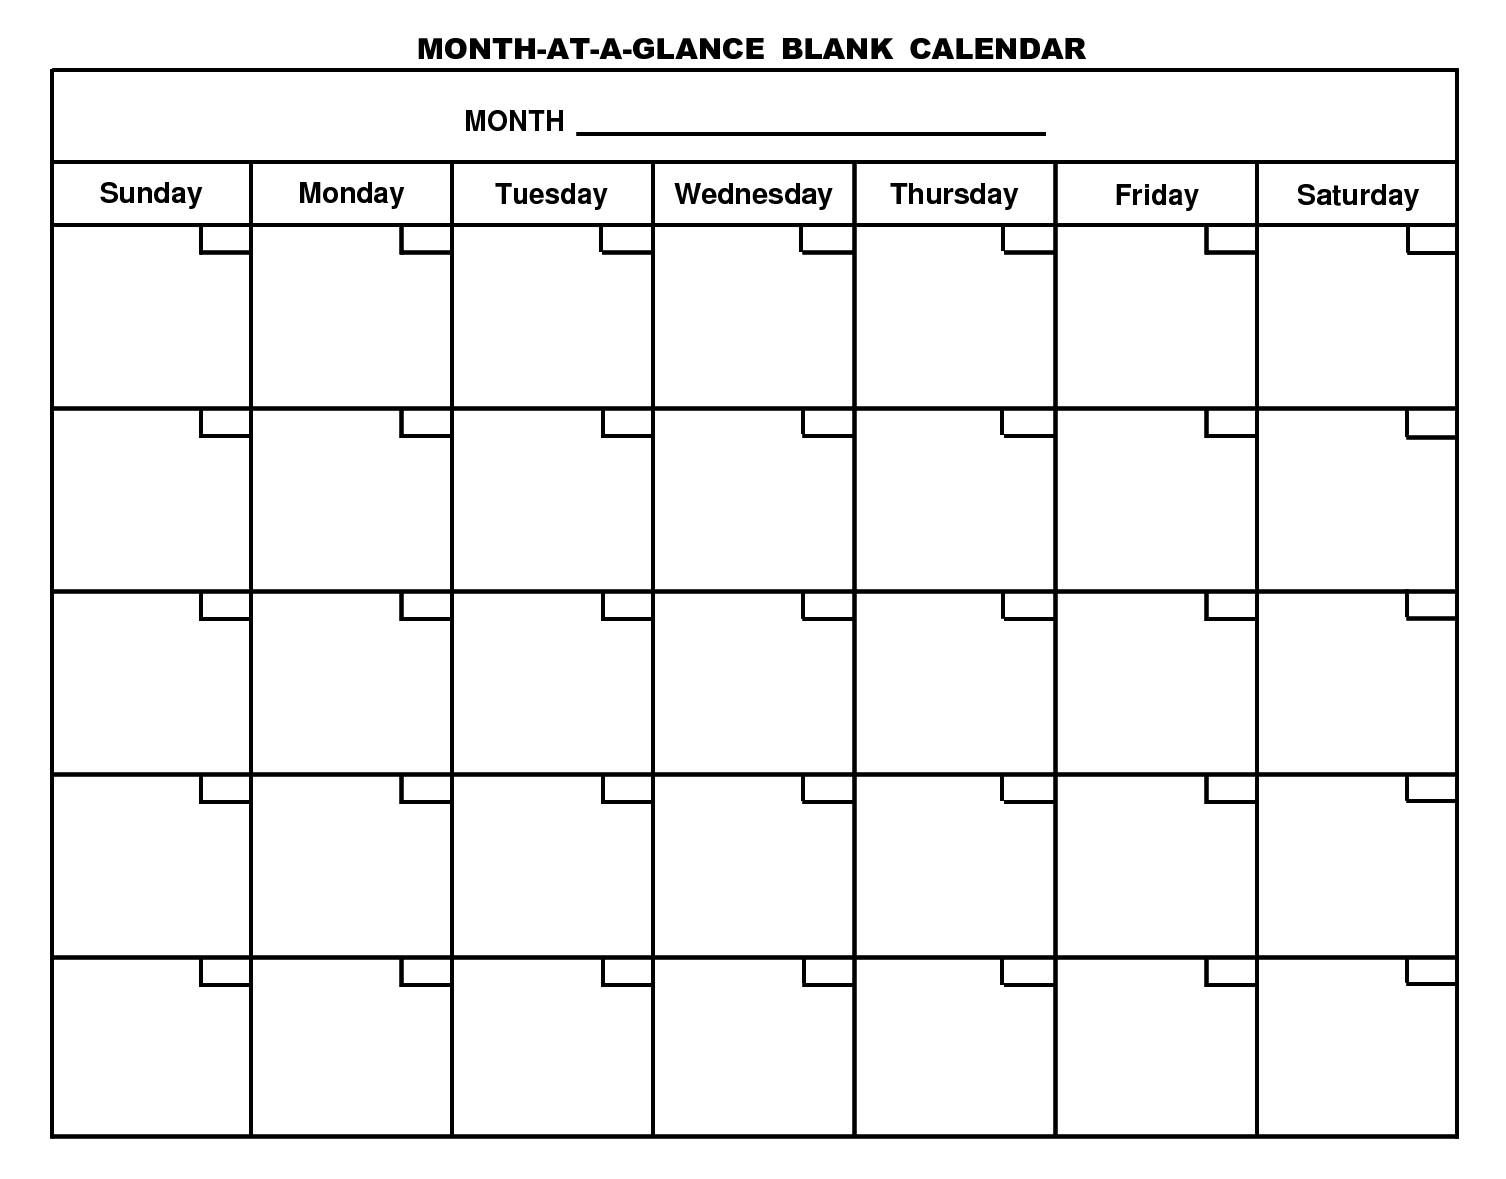 Month At A Glance Template - Wpa.wpart.co